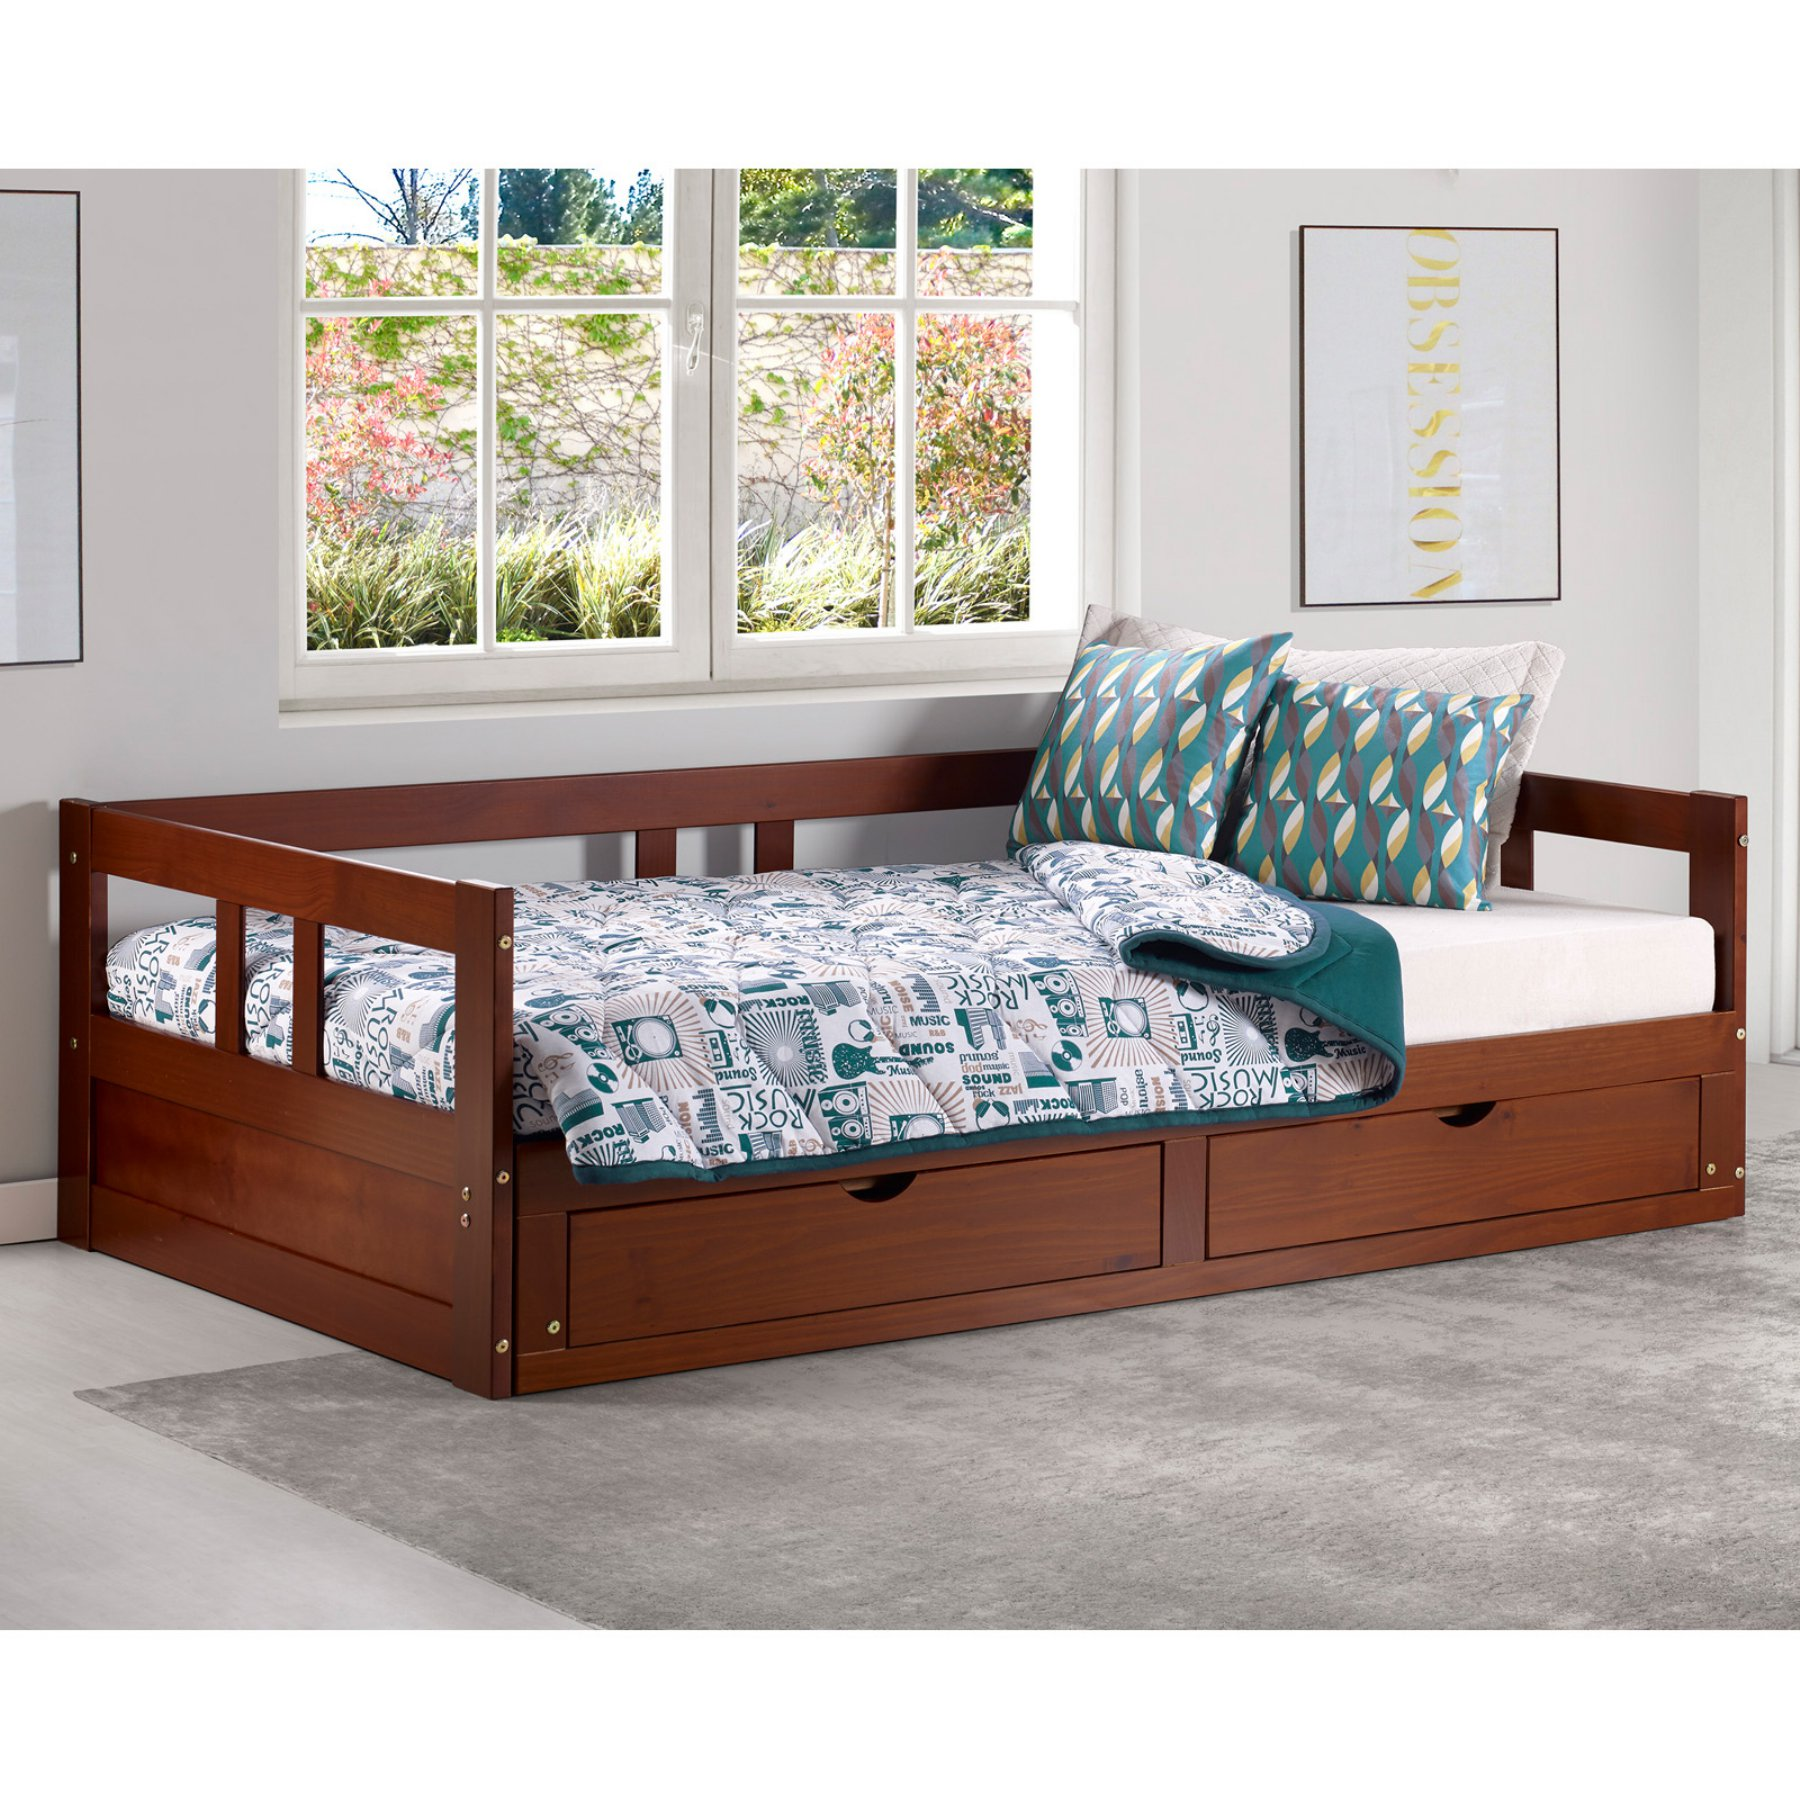 Alaterre Melody Day Bed with Storage Daybed with storage